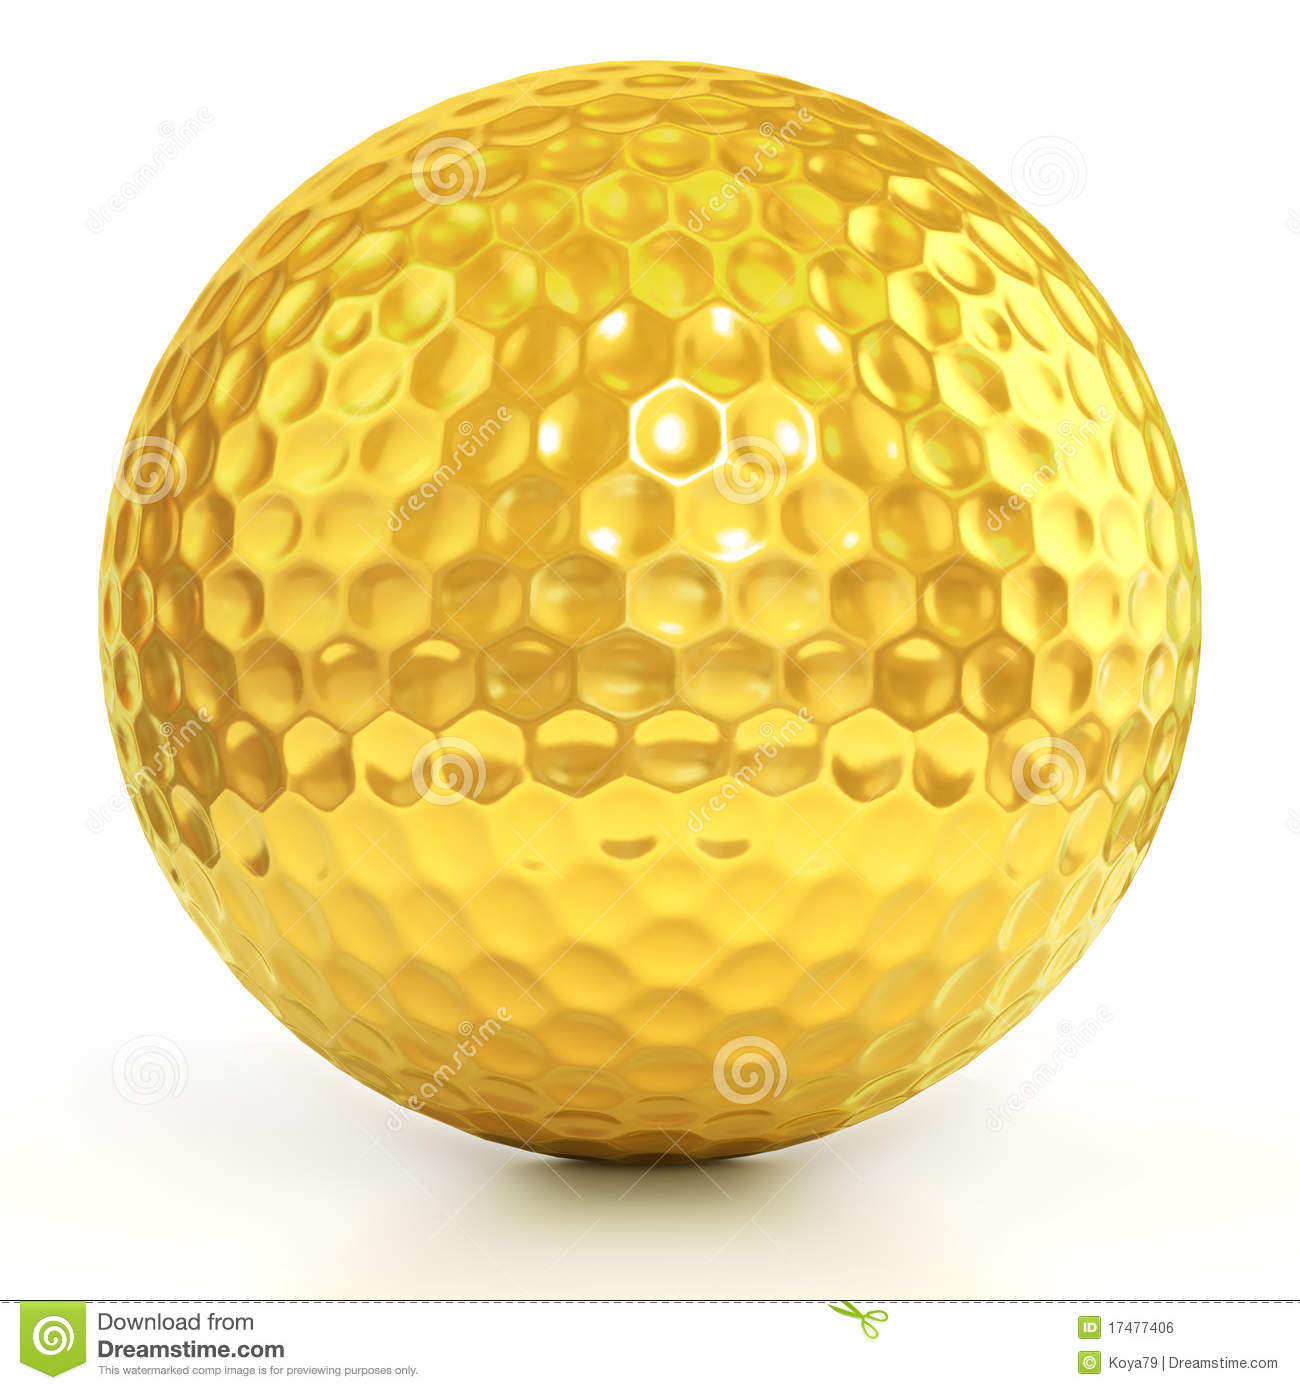 Golden Golf Ball Isolated Over White Royalty Free Stock Image - Image ... Golf Ball On Tee Clipart